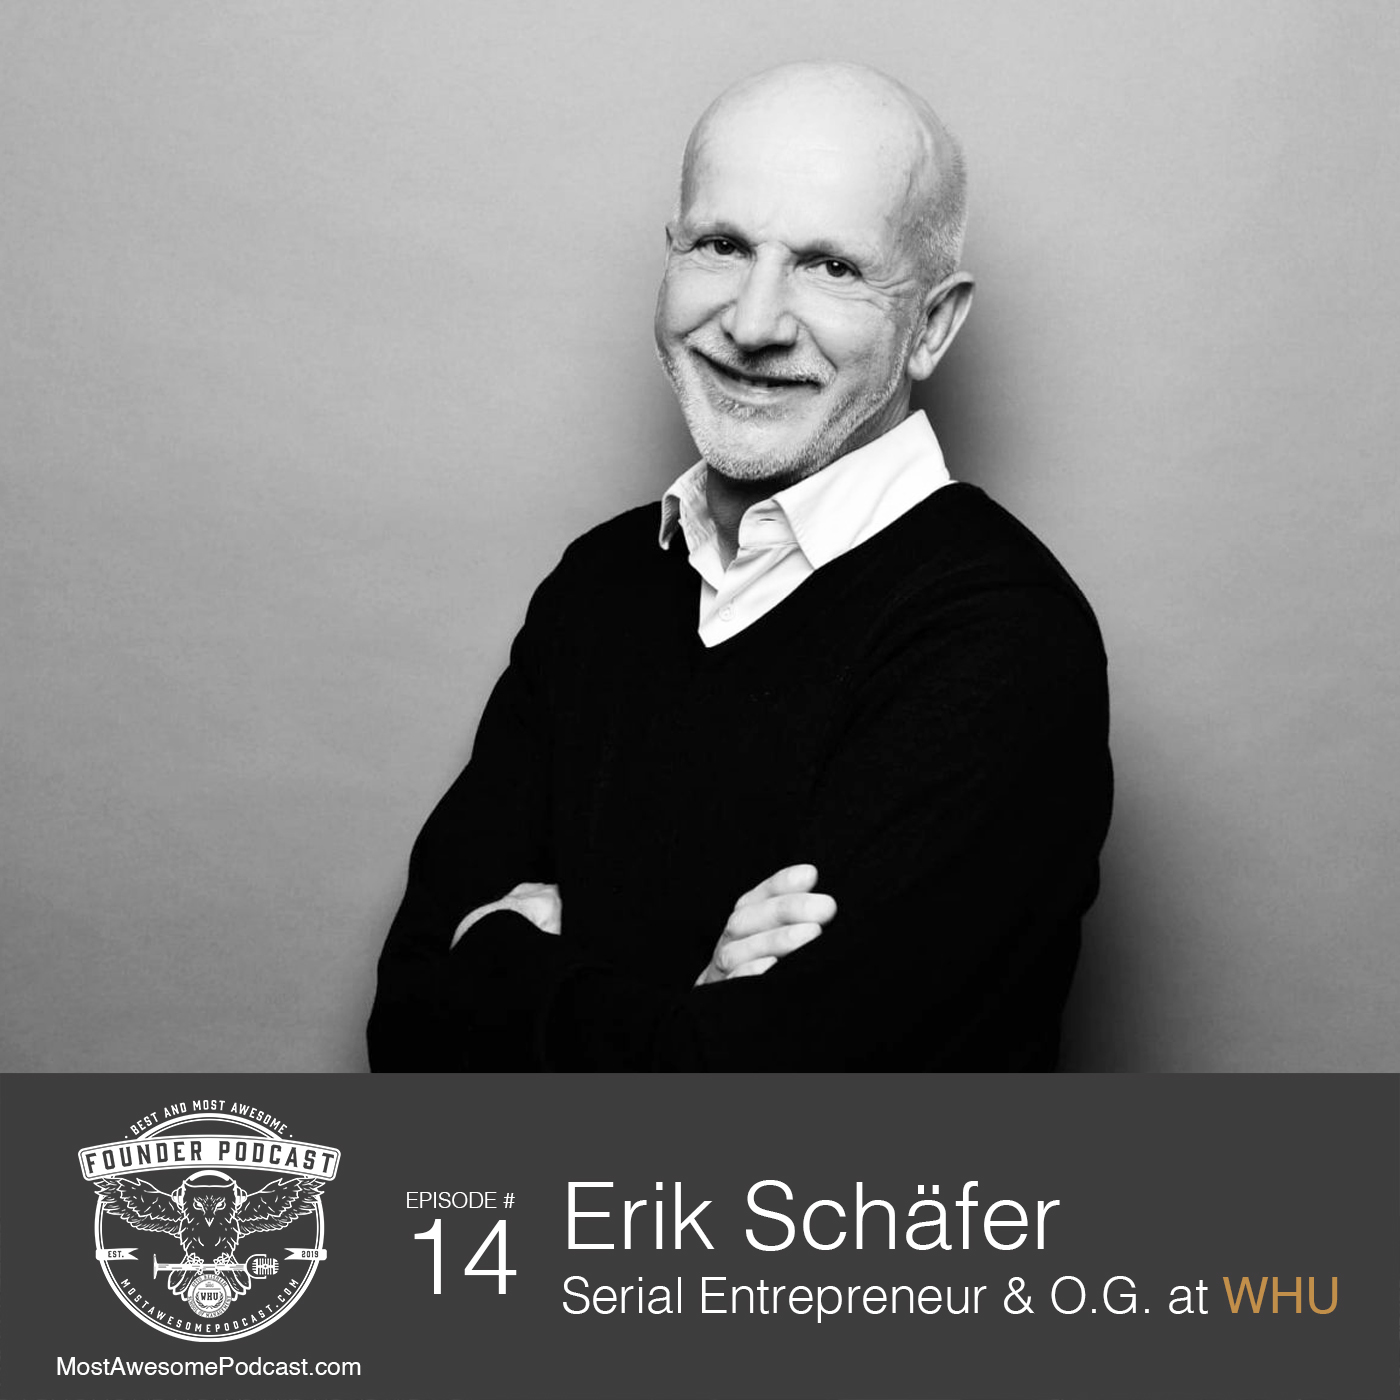 Ep. 14 - Entrepreneurship, Investment, and the Art of Guanxi with Erik Schäfer